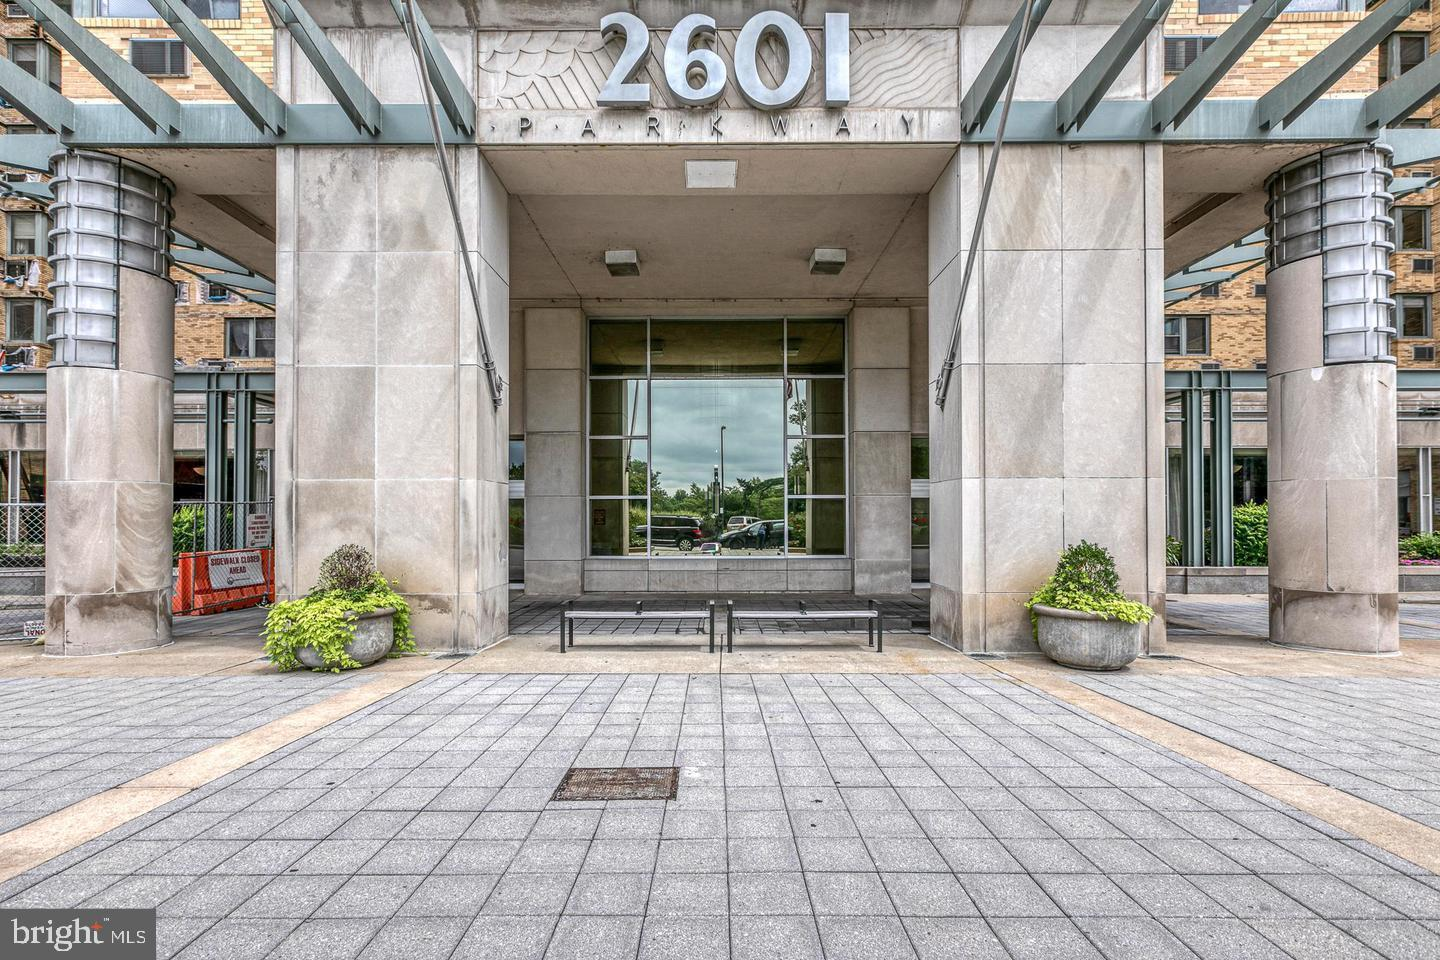 2601 Pennsylvania Avenue UNIT #734 Philadelphia, PA 19130